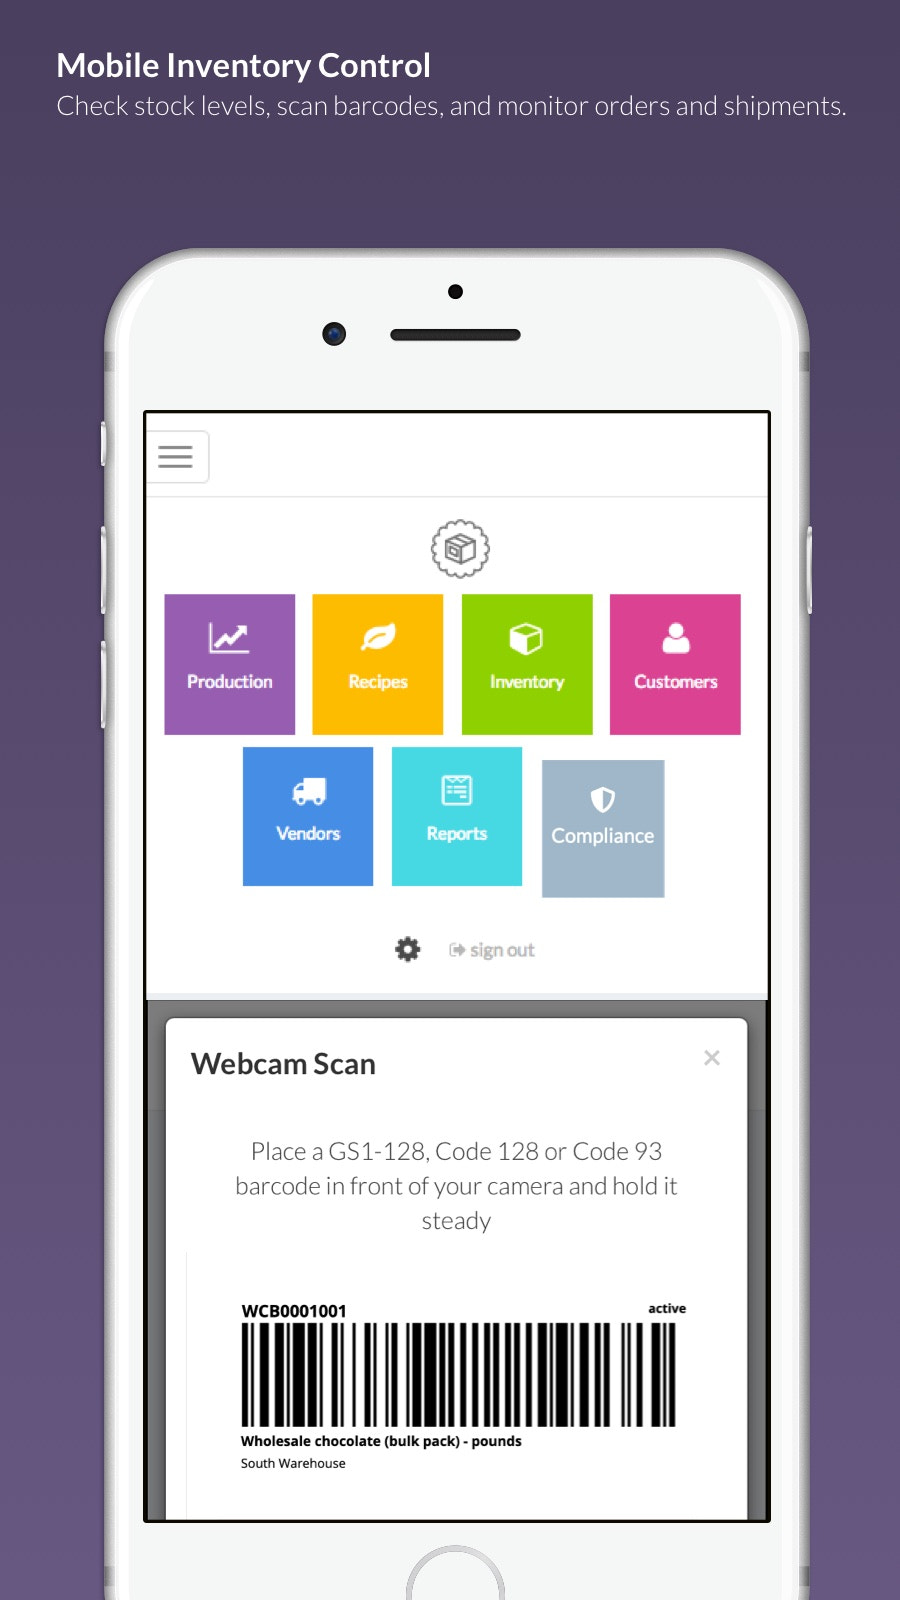 Mobile Inventory Control for Stock, Orders and Fulfillment